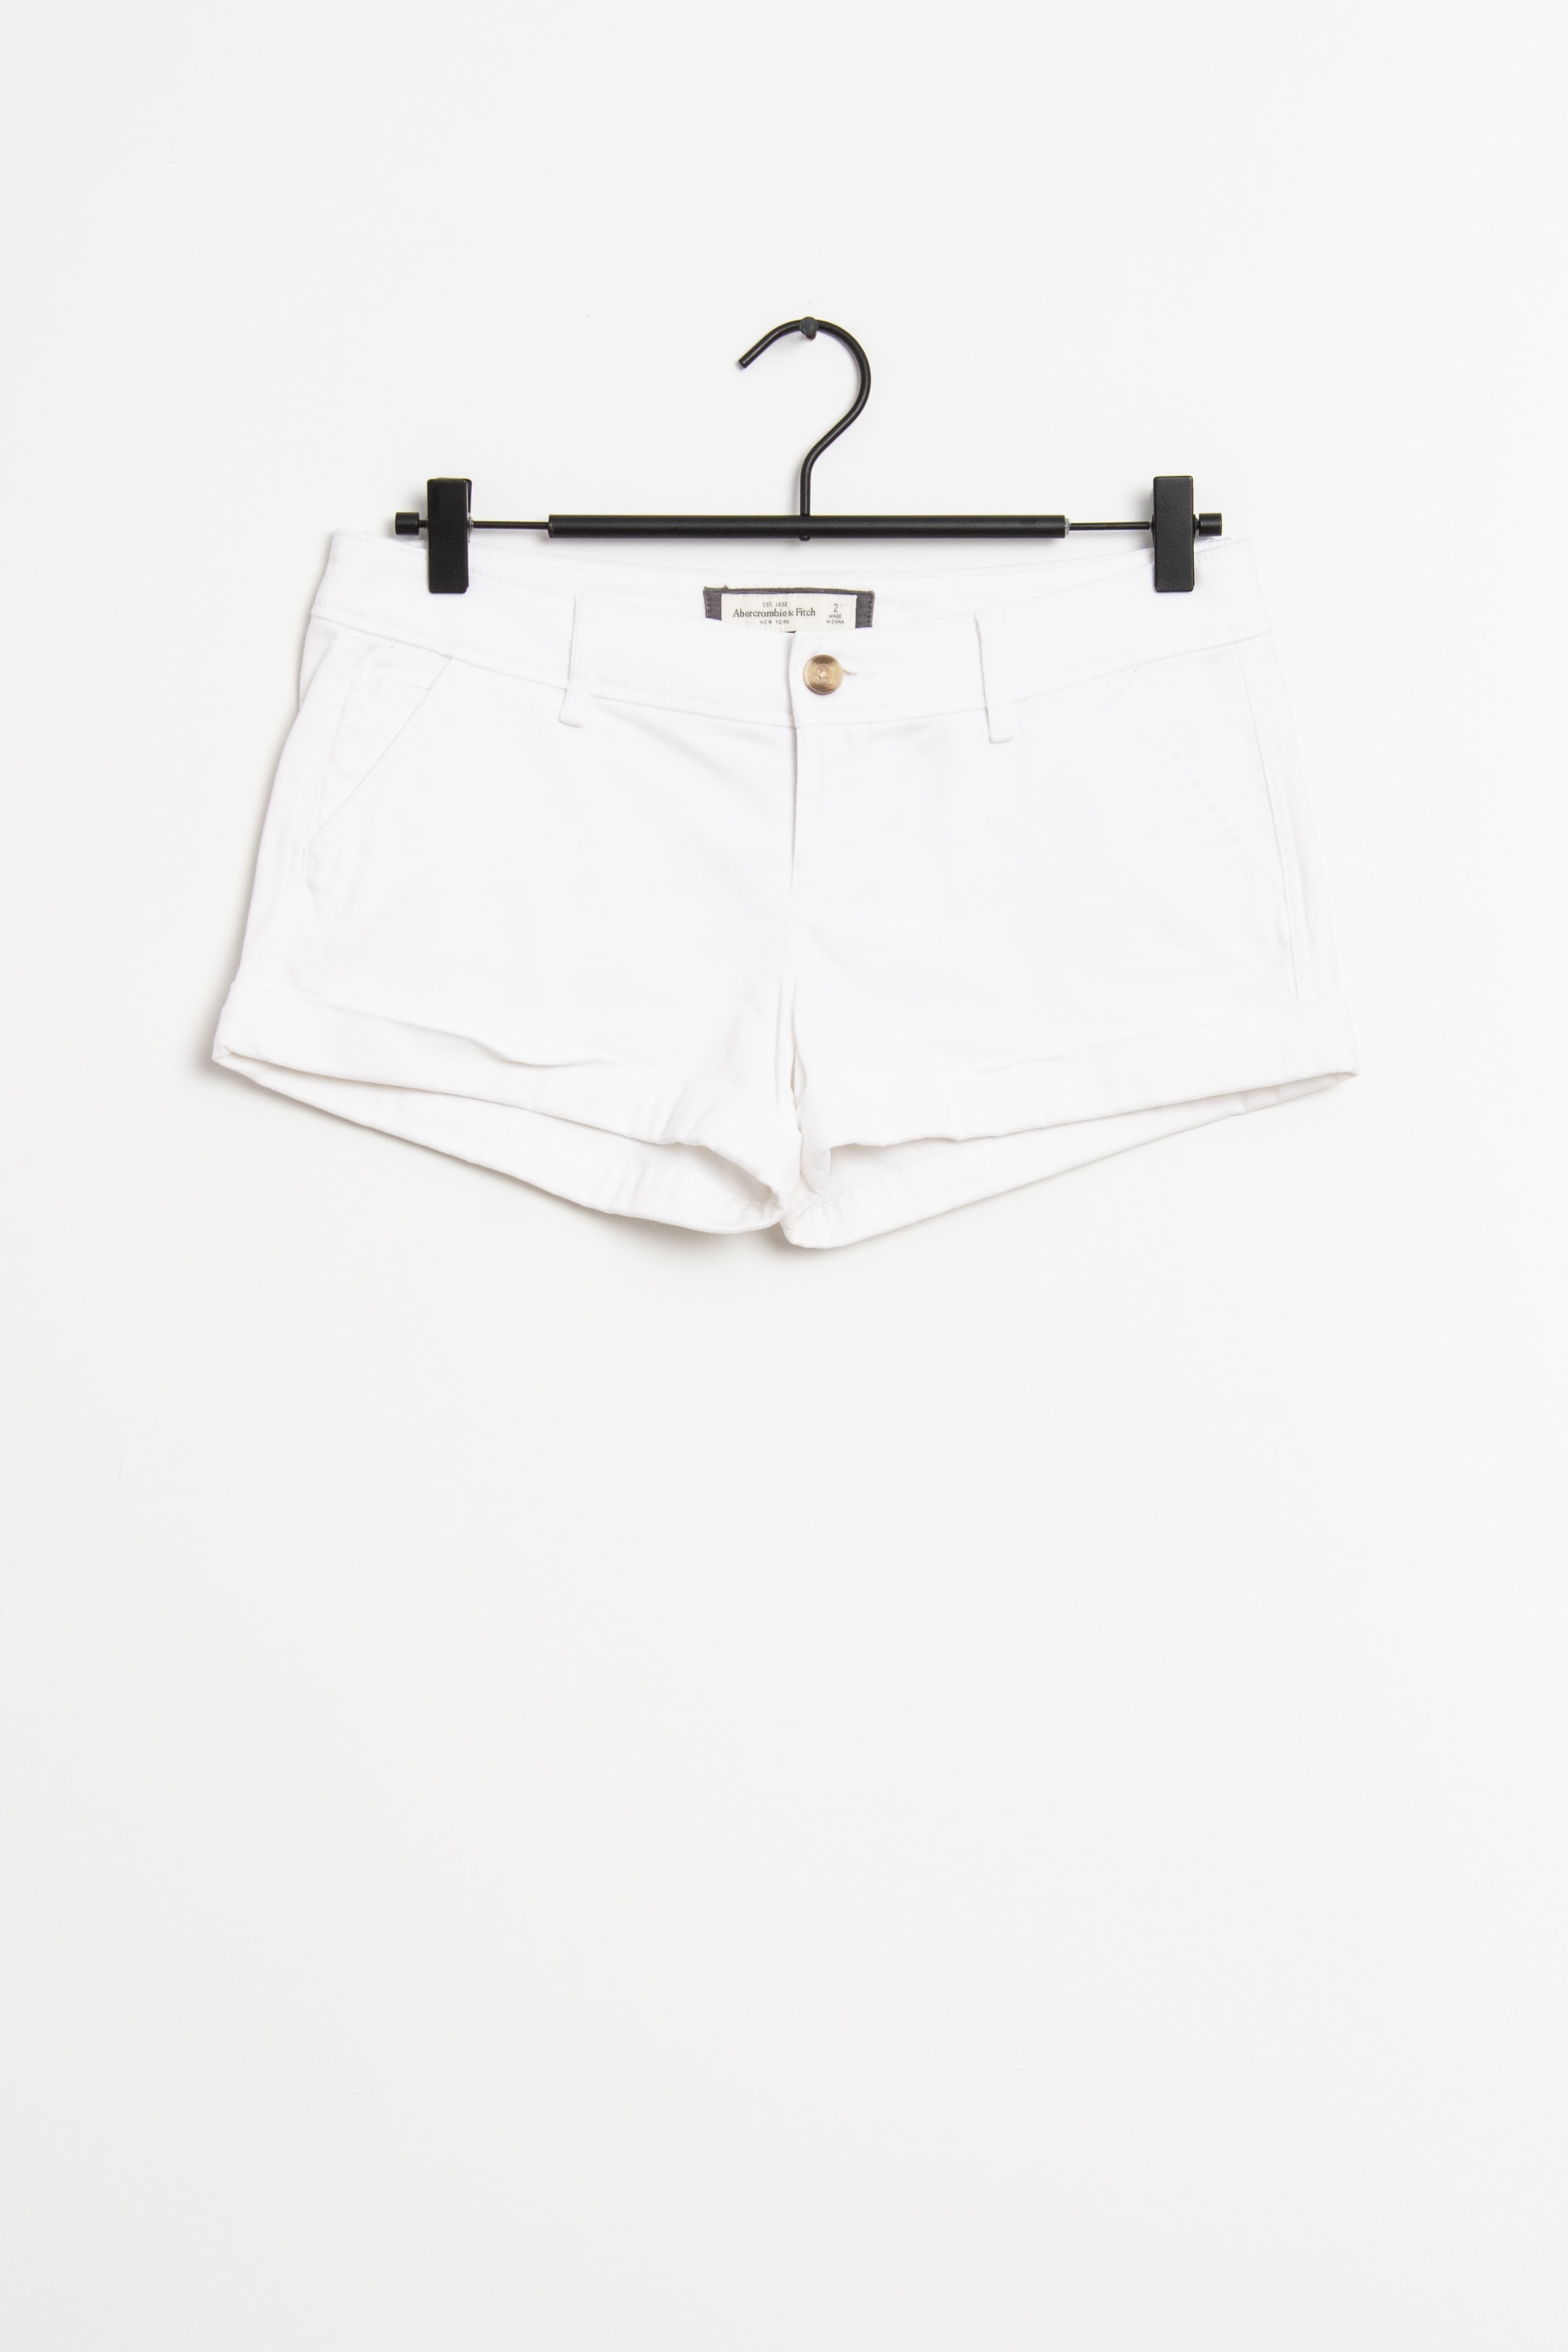 Abercrombie & Fitch Shorts Weiß Gr.34